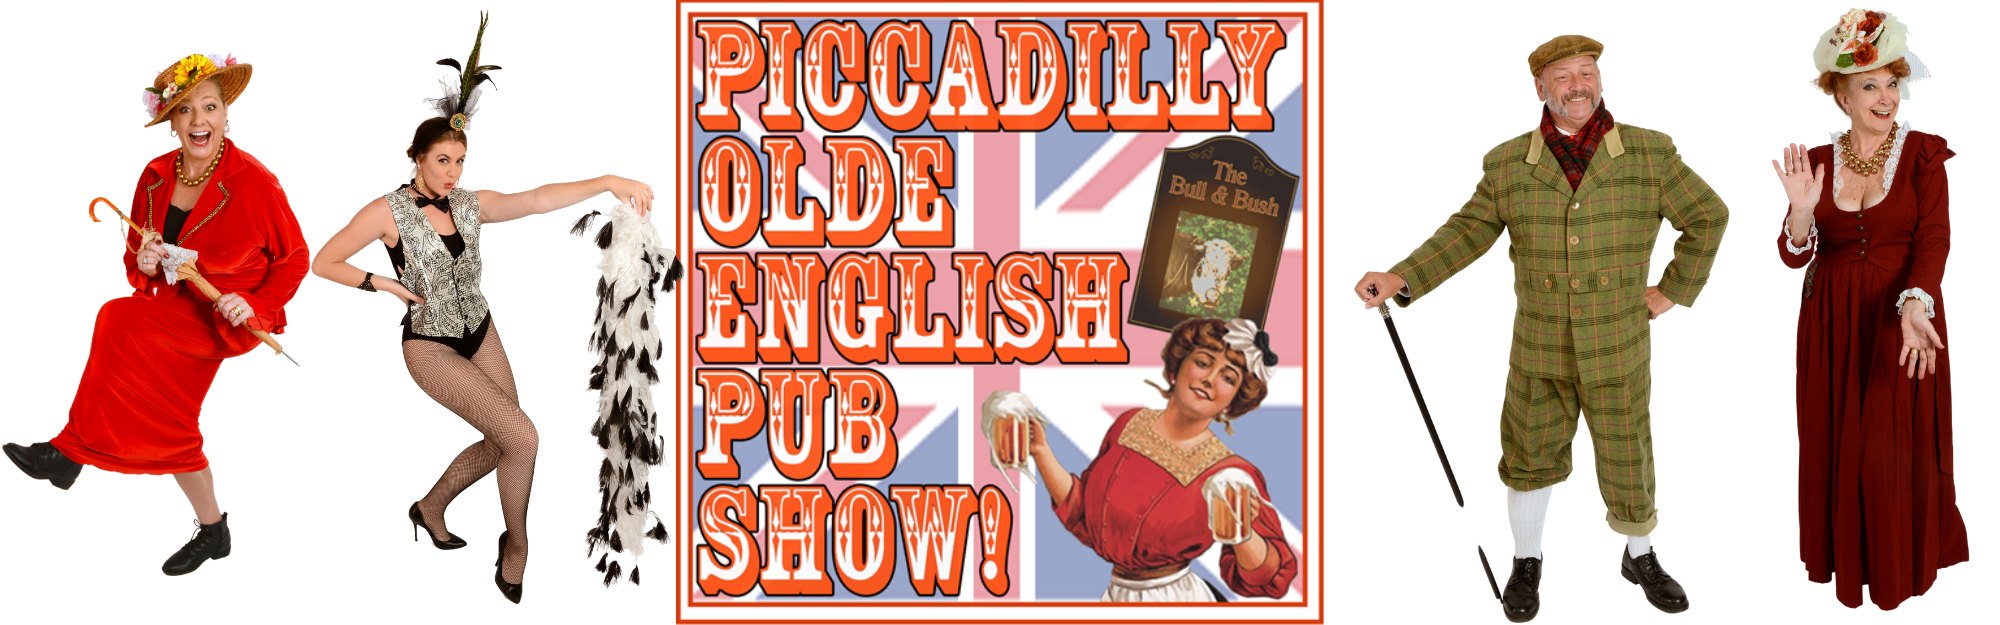 Piccadilly web banner